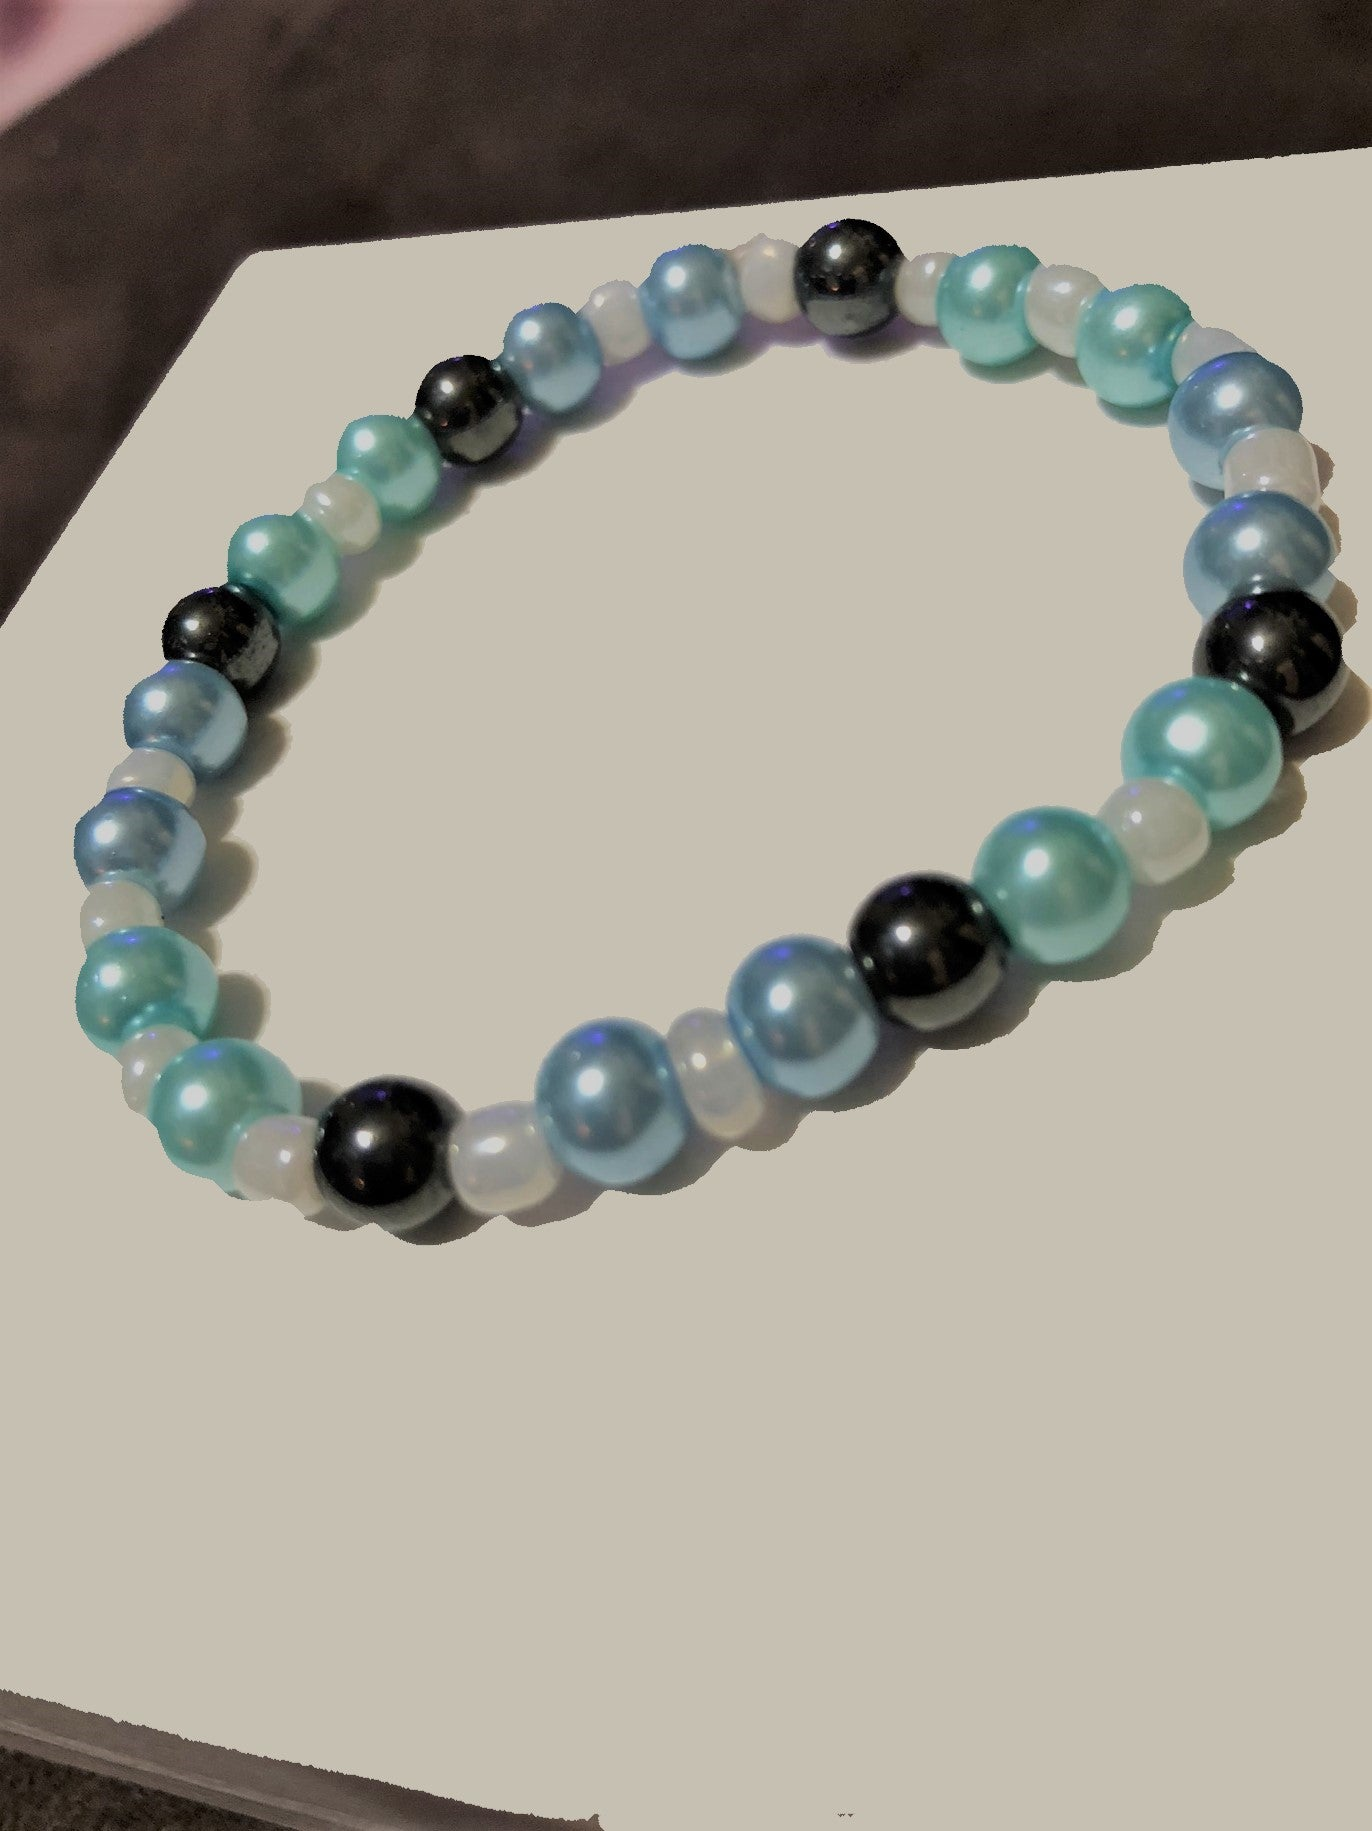 Hematite, Pearls with Opaque Glass Accents